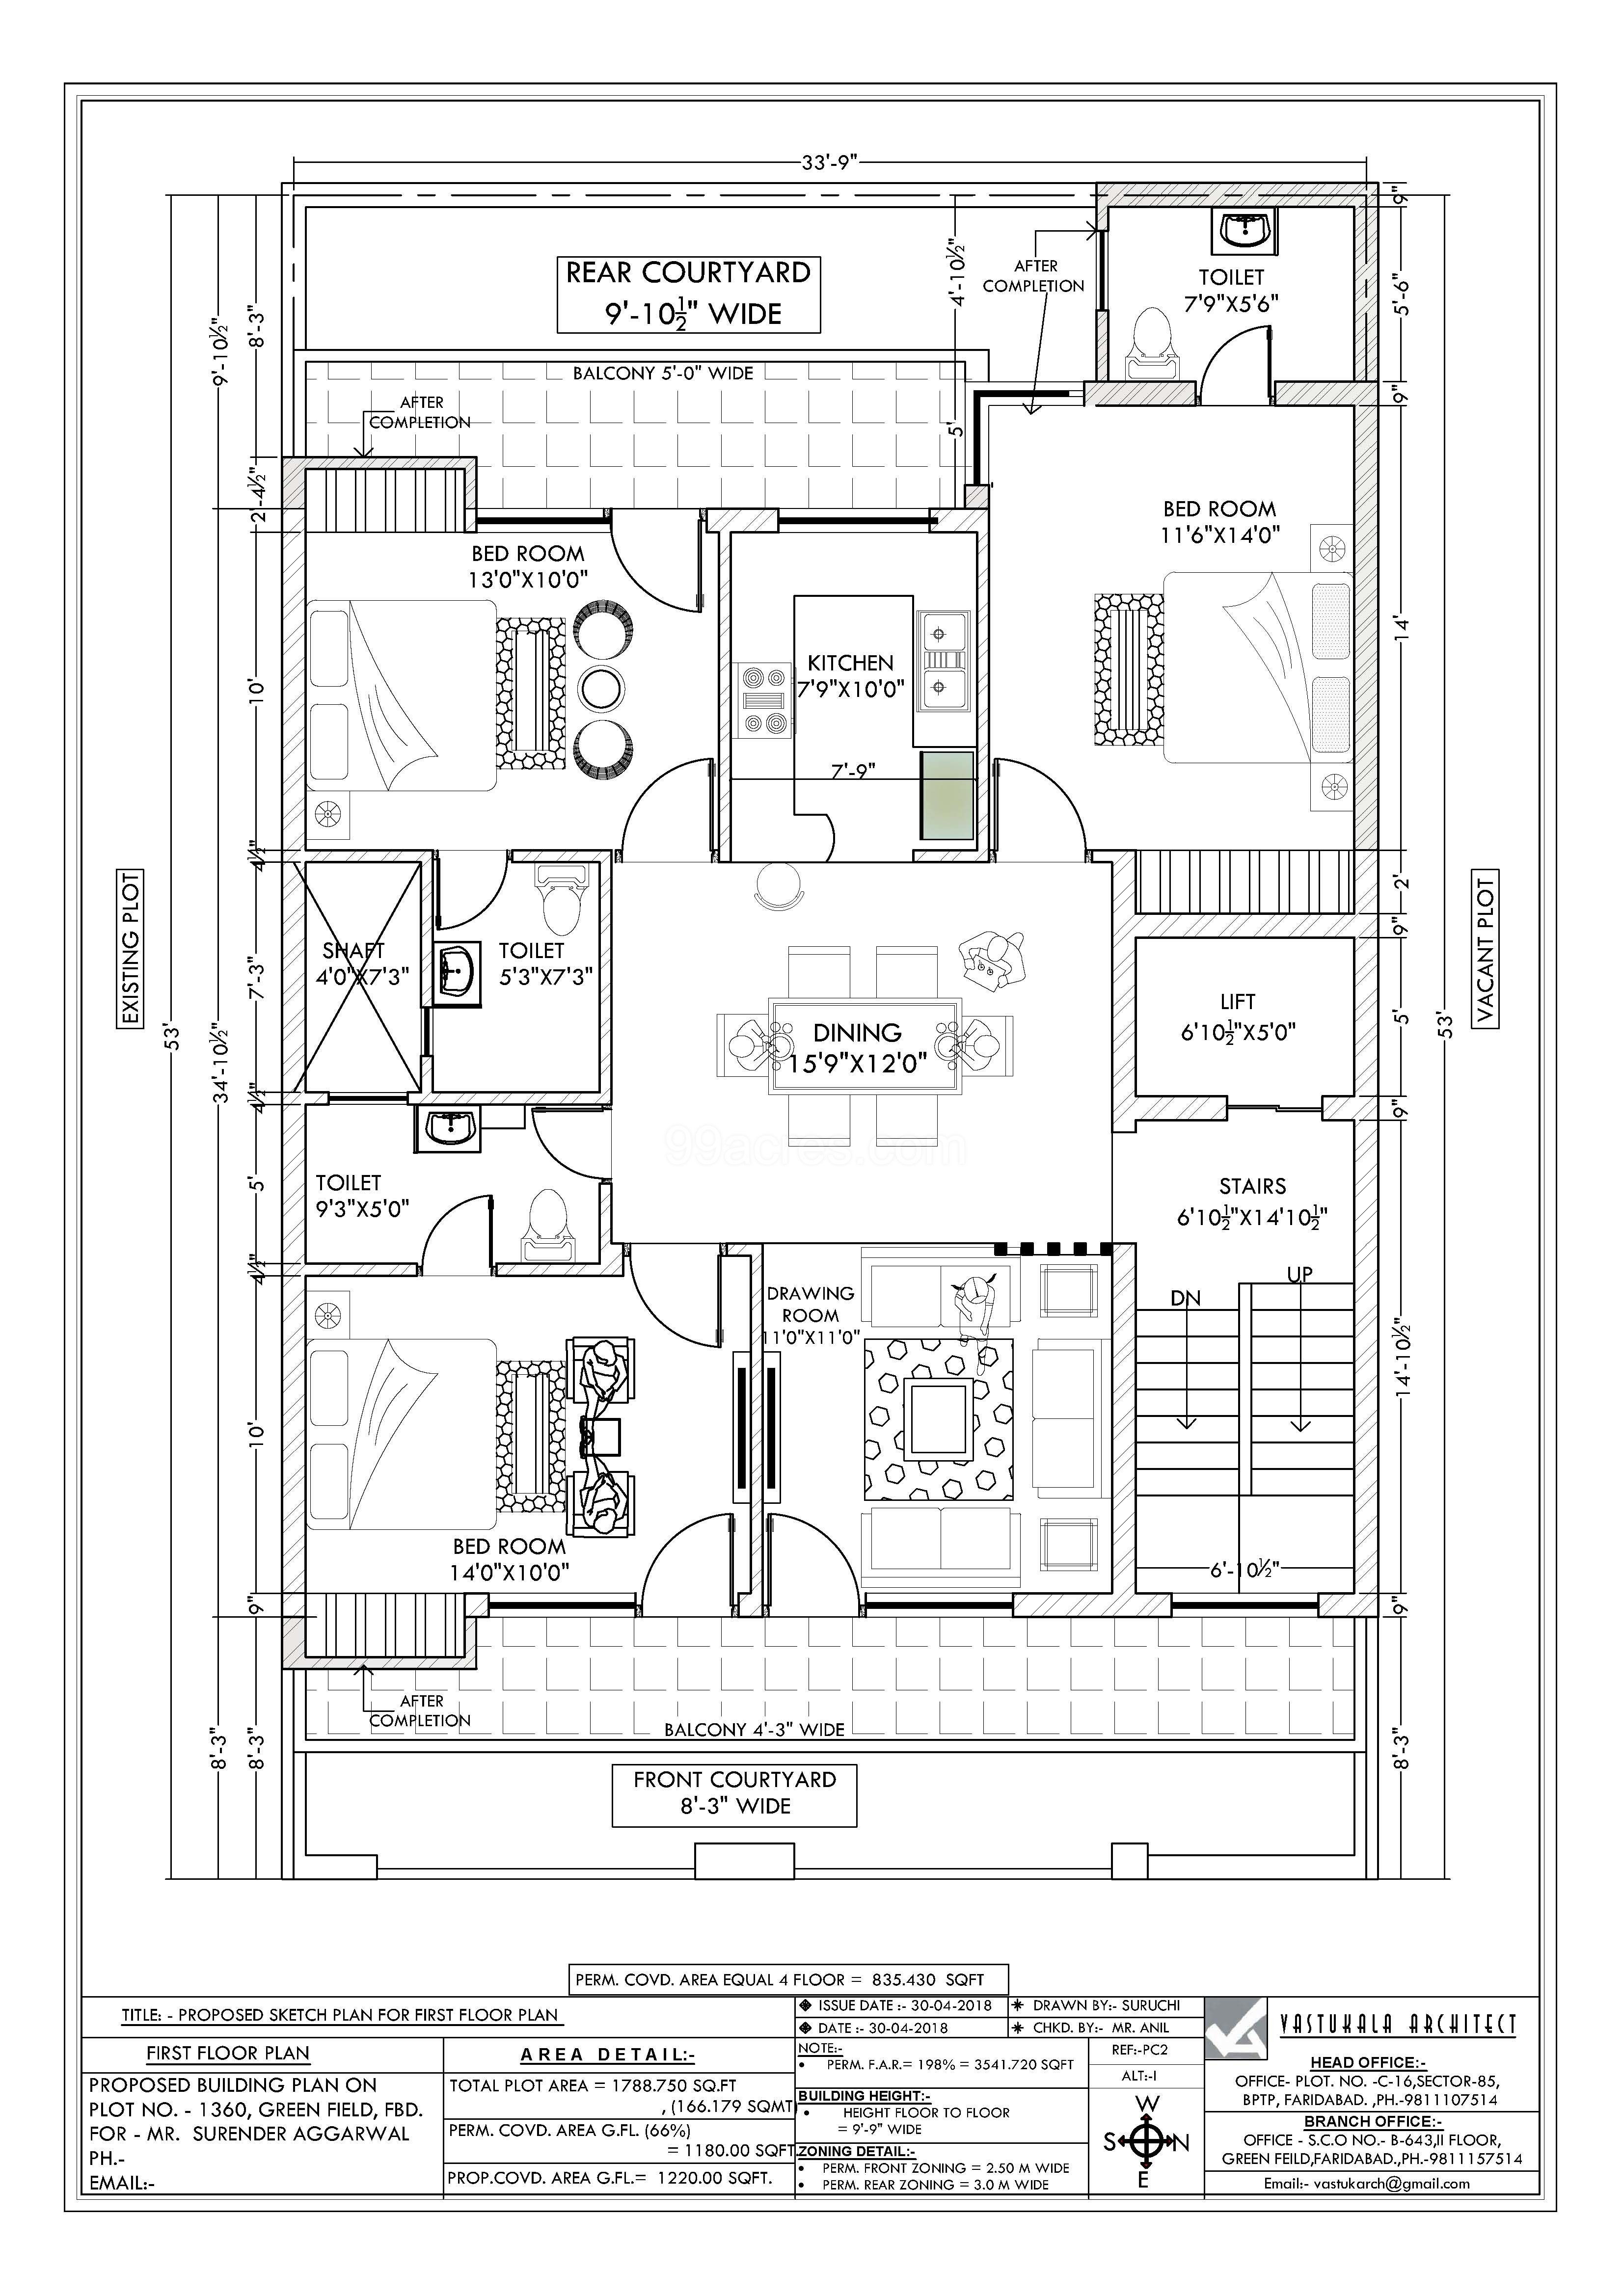 Faridabad Satvik Homes Floor Plan